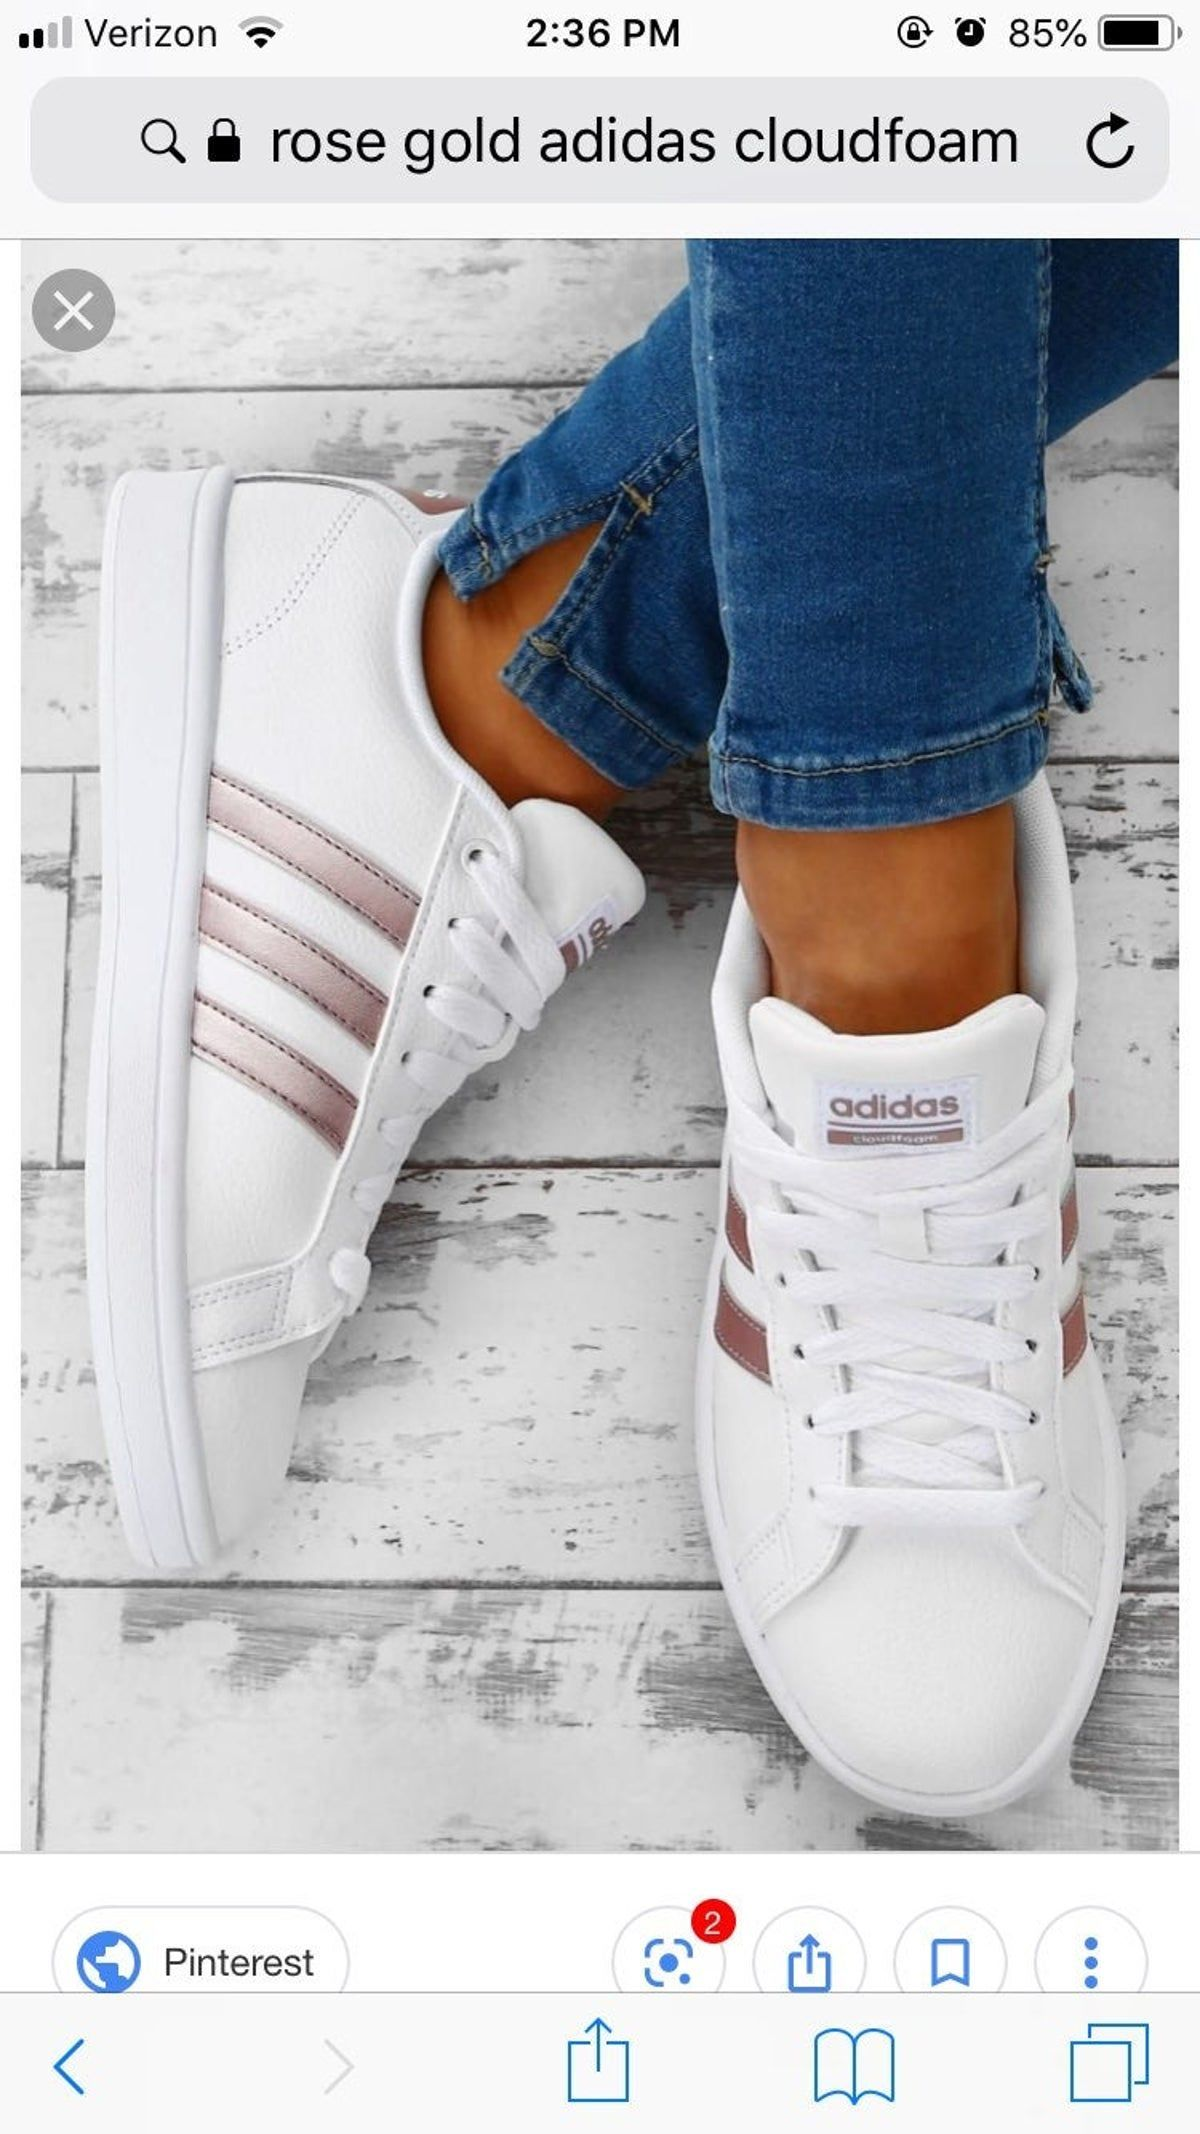 esqueleto electo Lógicamente  Adidas - in 2020 | Adidas outfit shoes, Rose gold adidas, Adidas shoes women